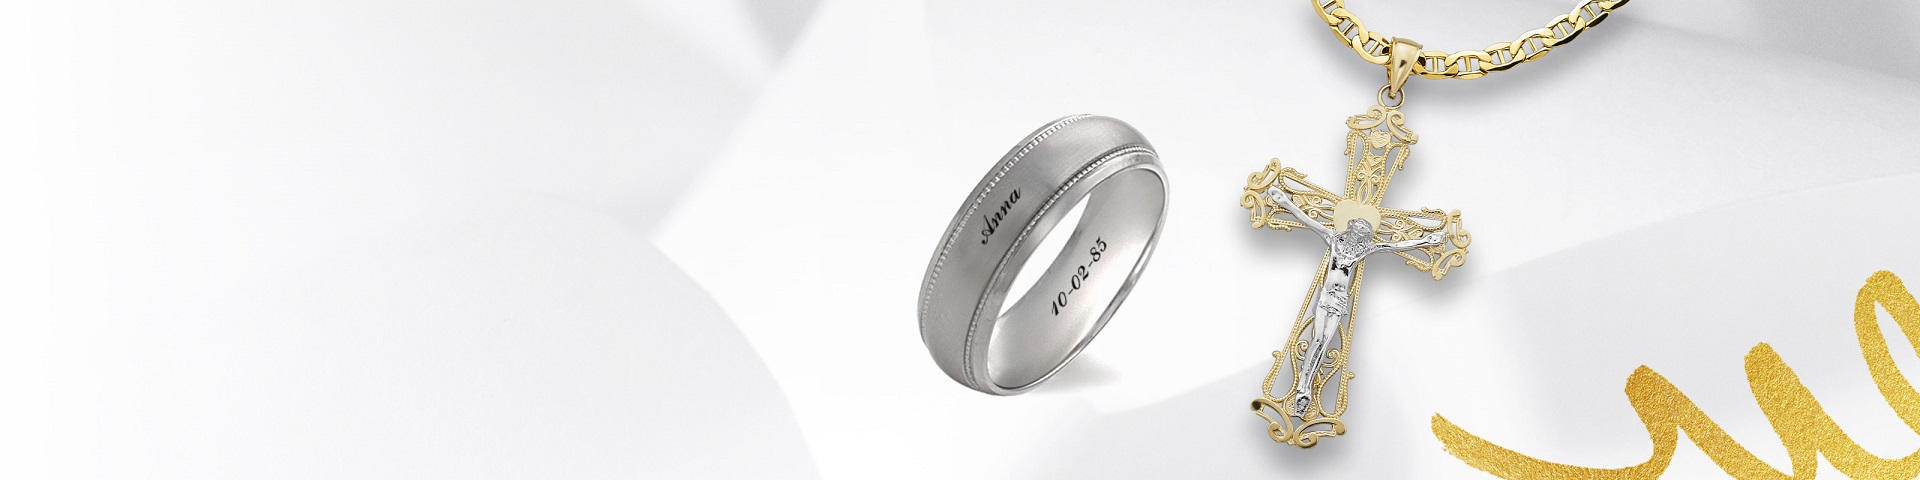 Men's chain pendant and engraved wedding band. Learn more about Custom Design at Jared.